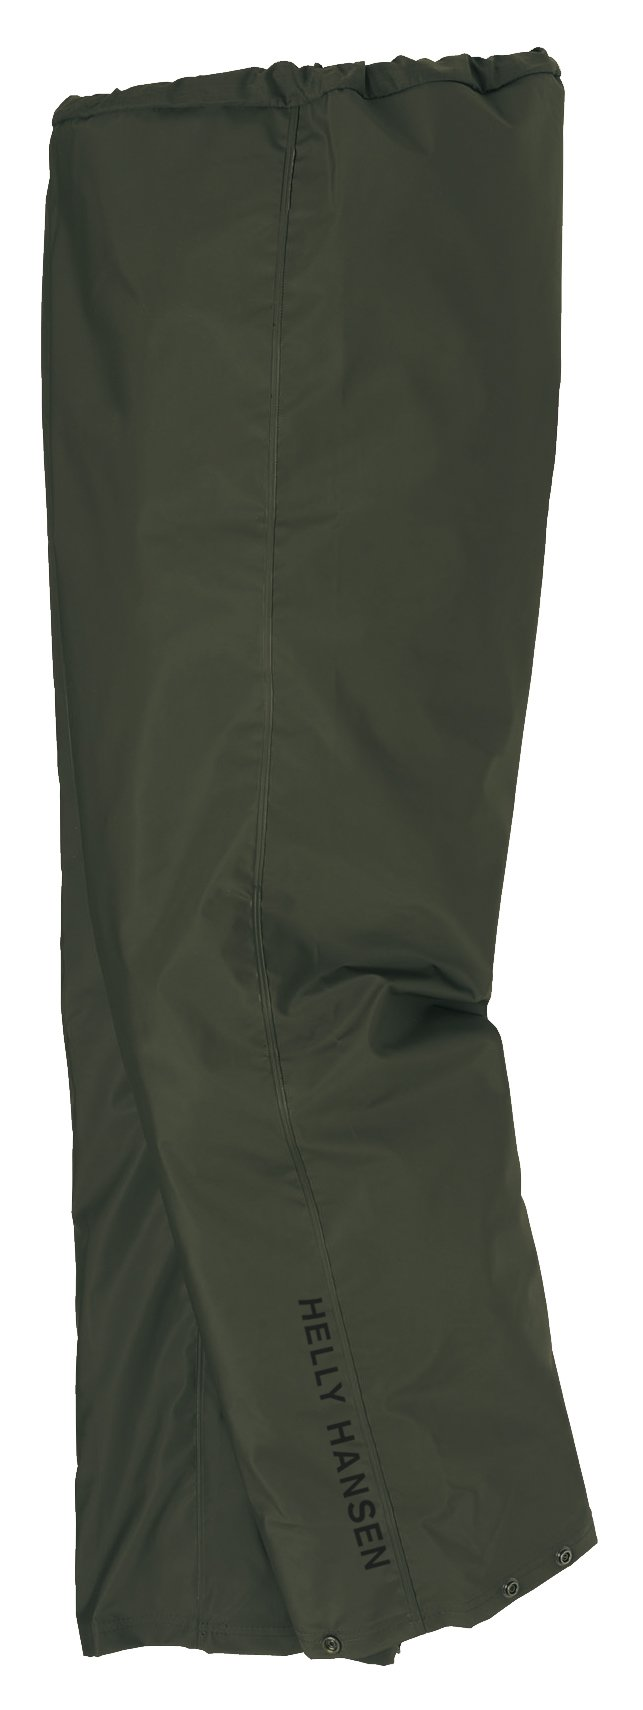 Helly Hansen Workwear Workwear Men's Mandal Rain Pant, Army Green, X-Large by Helly Hansen